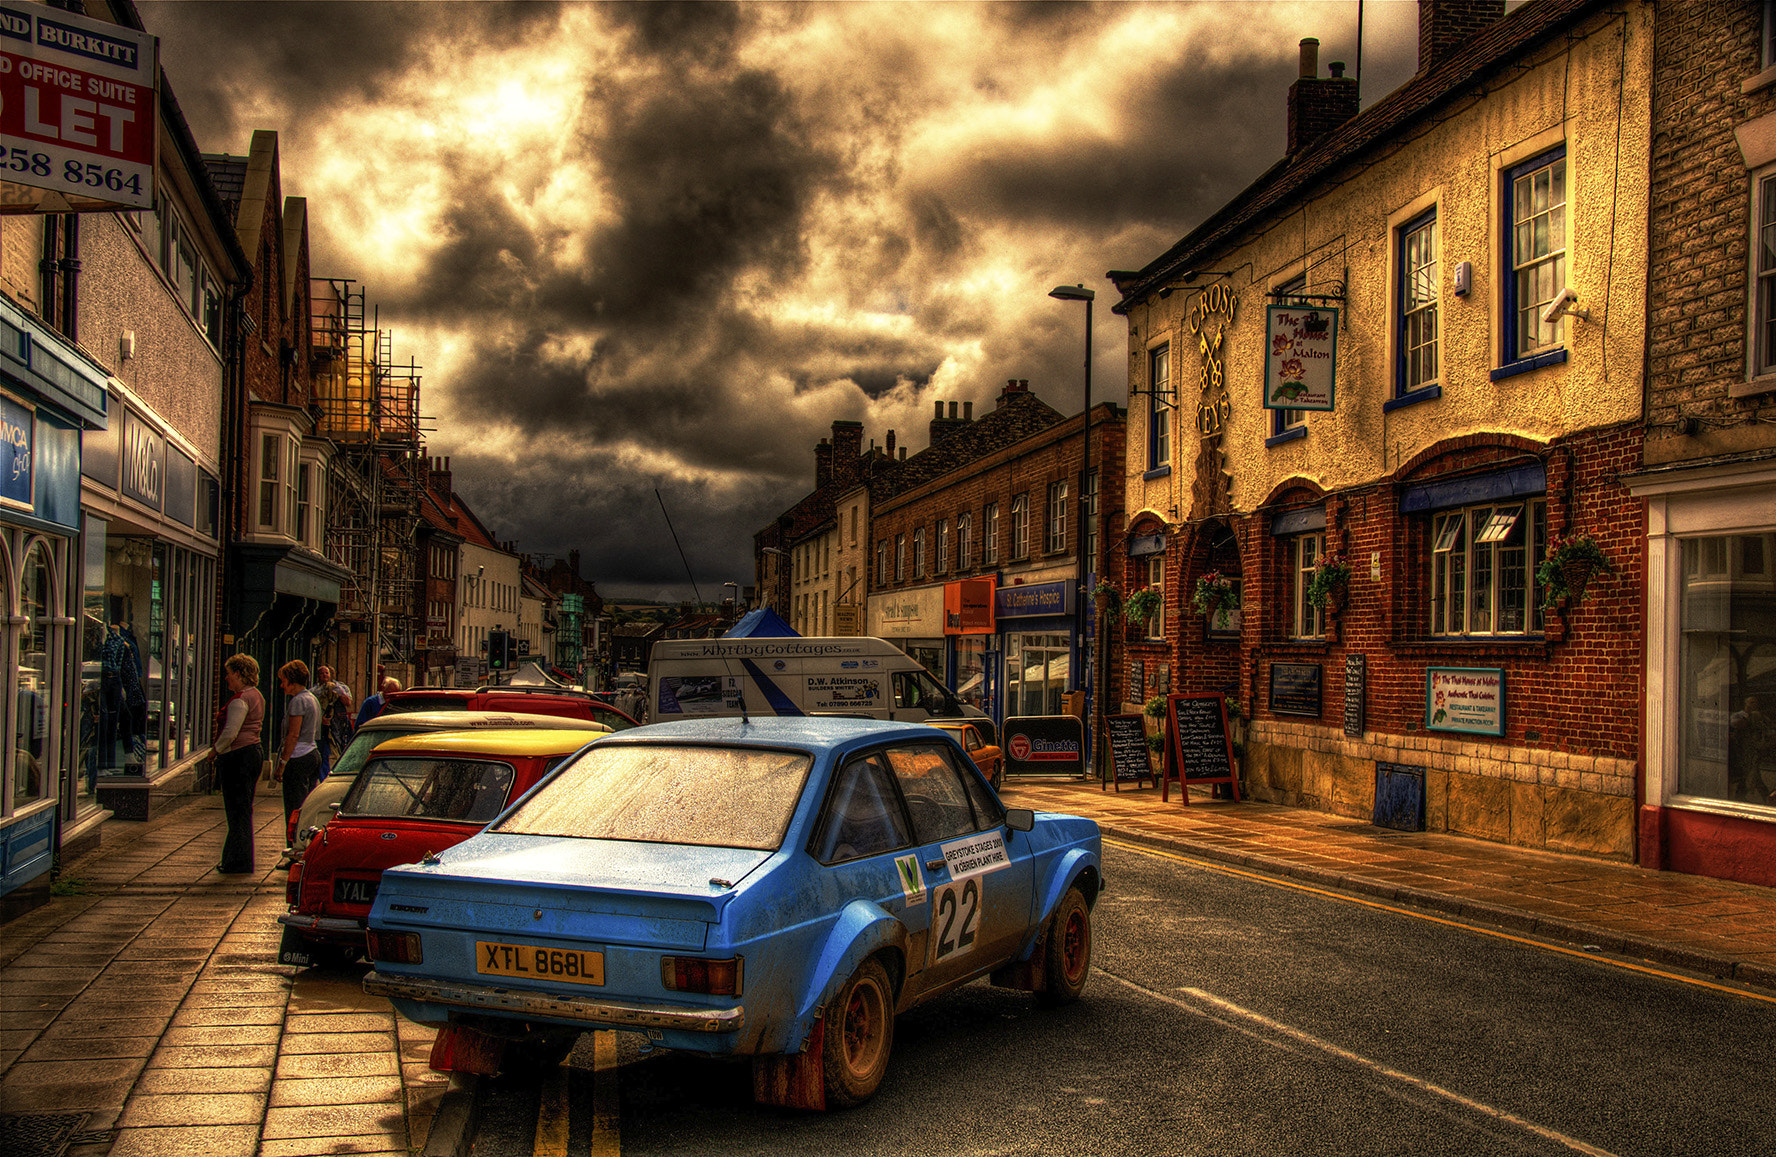 Photograph Dark skies threaten the day by Alonza Driver on 500px